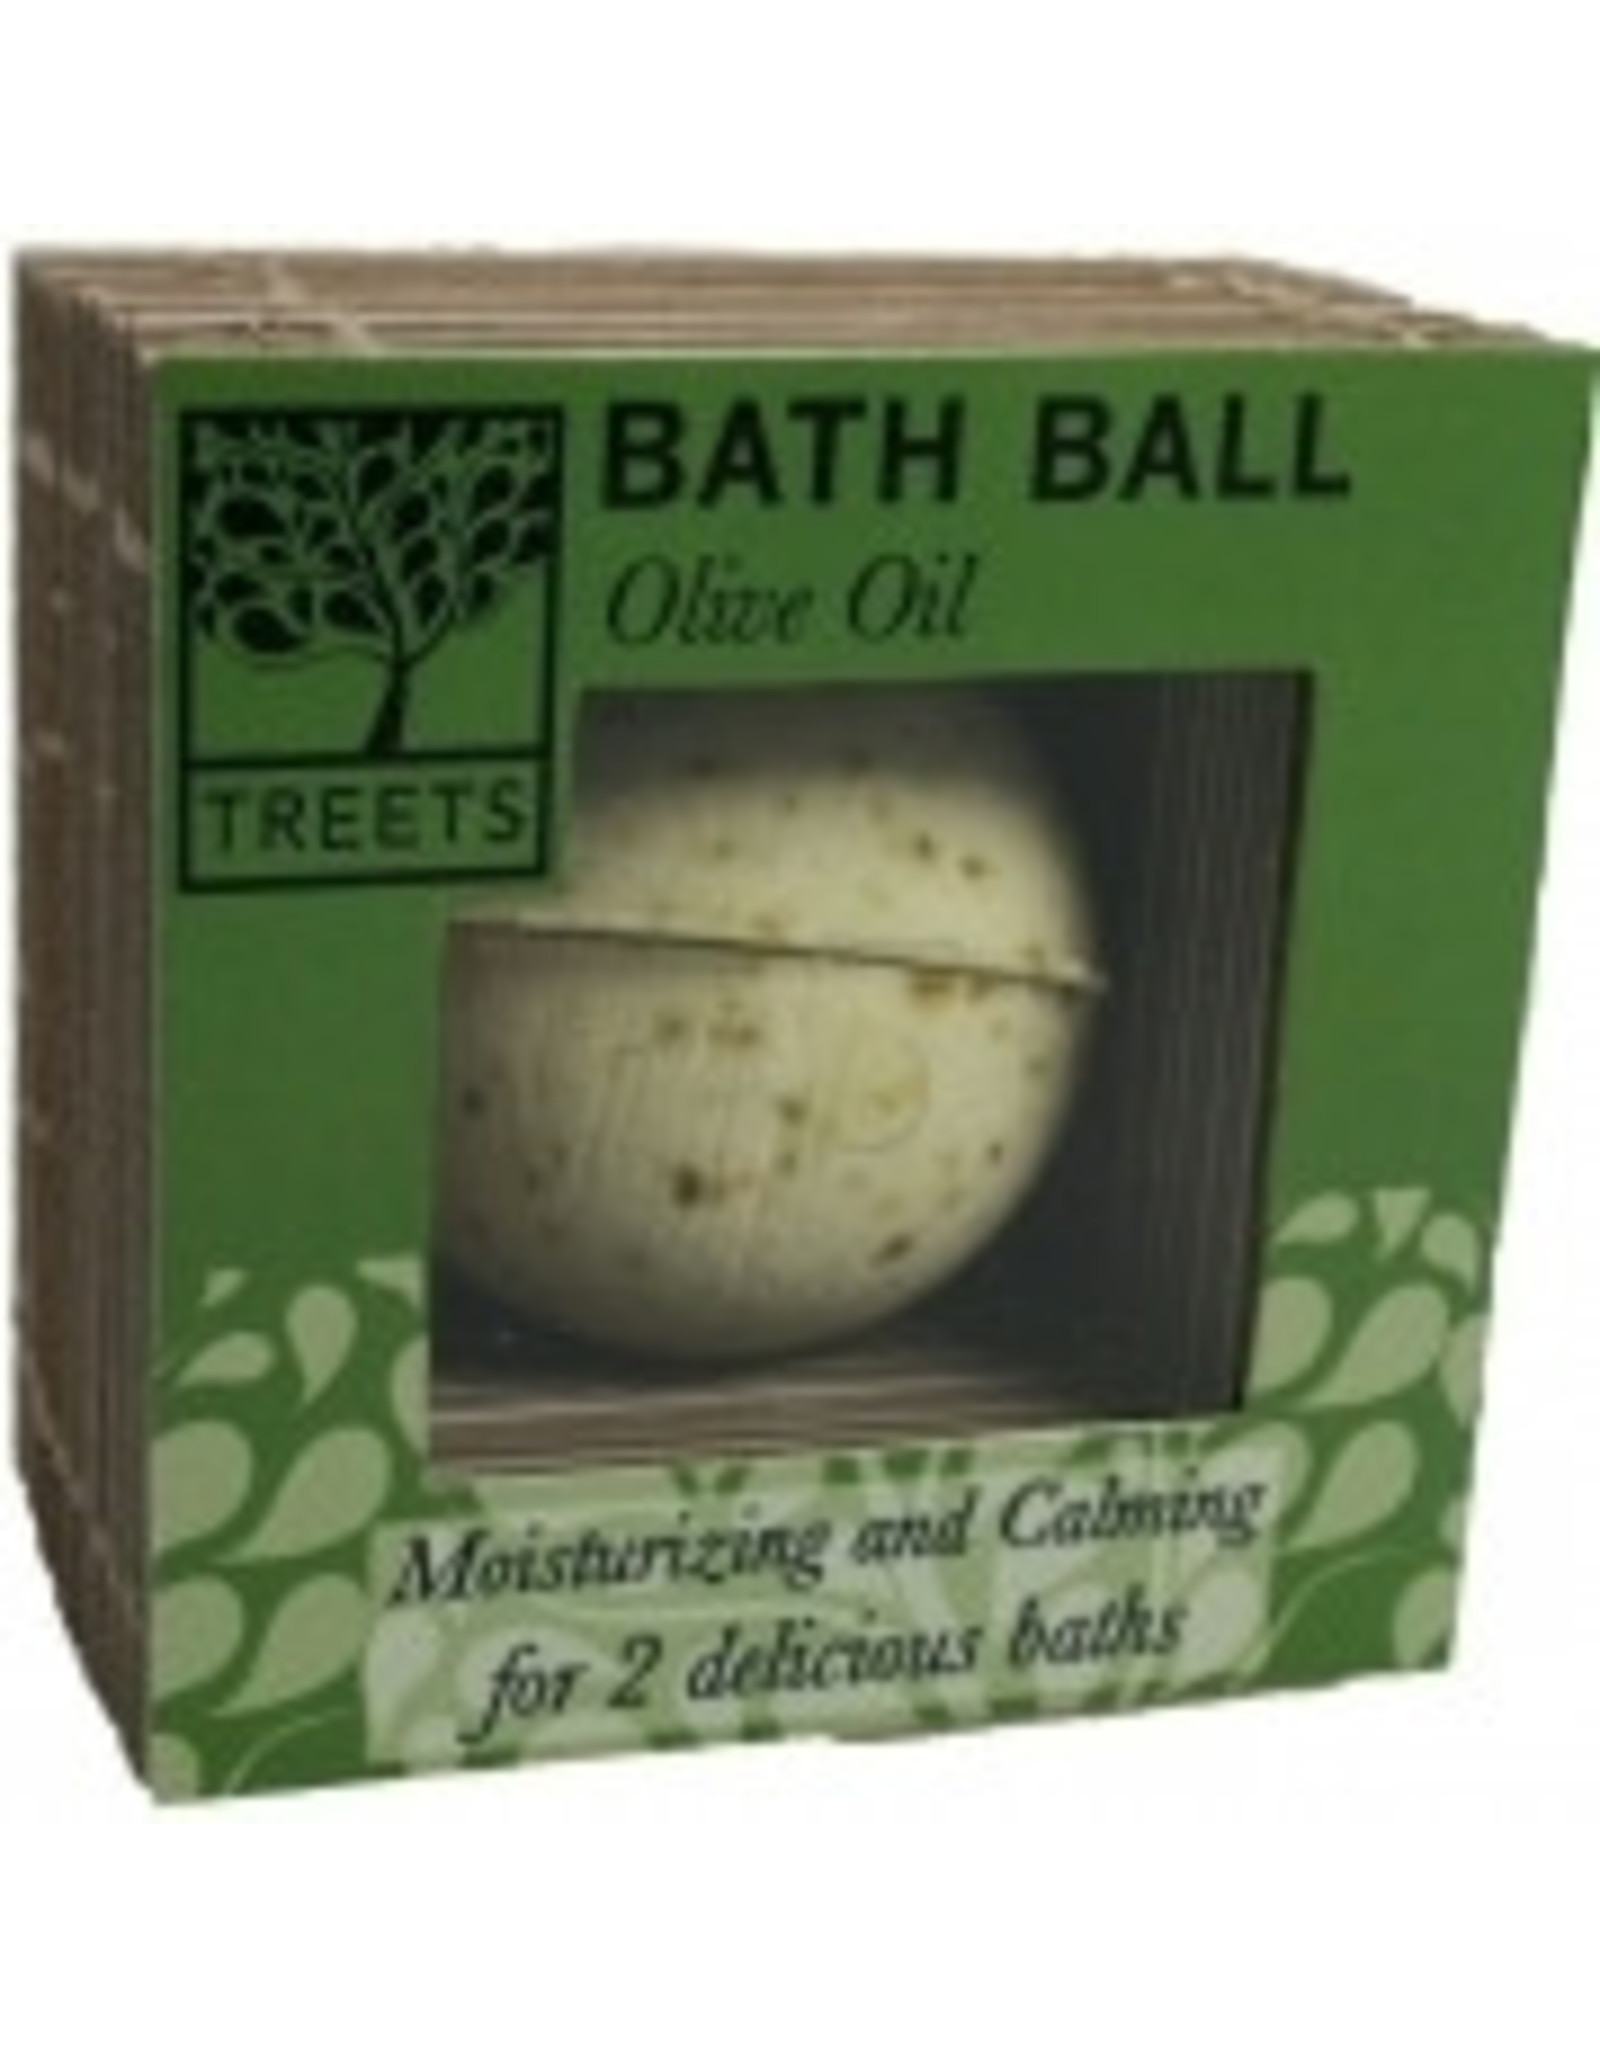 Treets 'Olive Oil' 2 x 100 g - Body & Soap